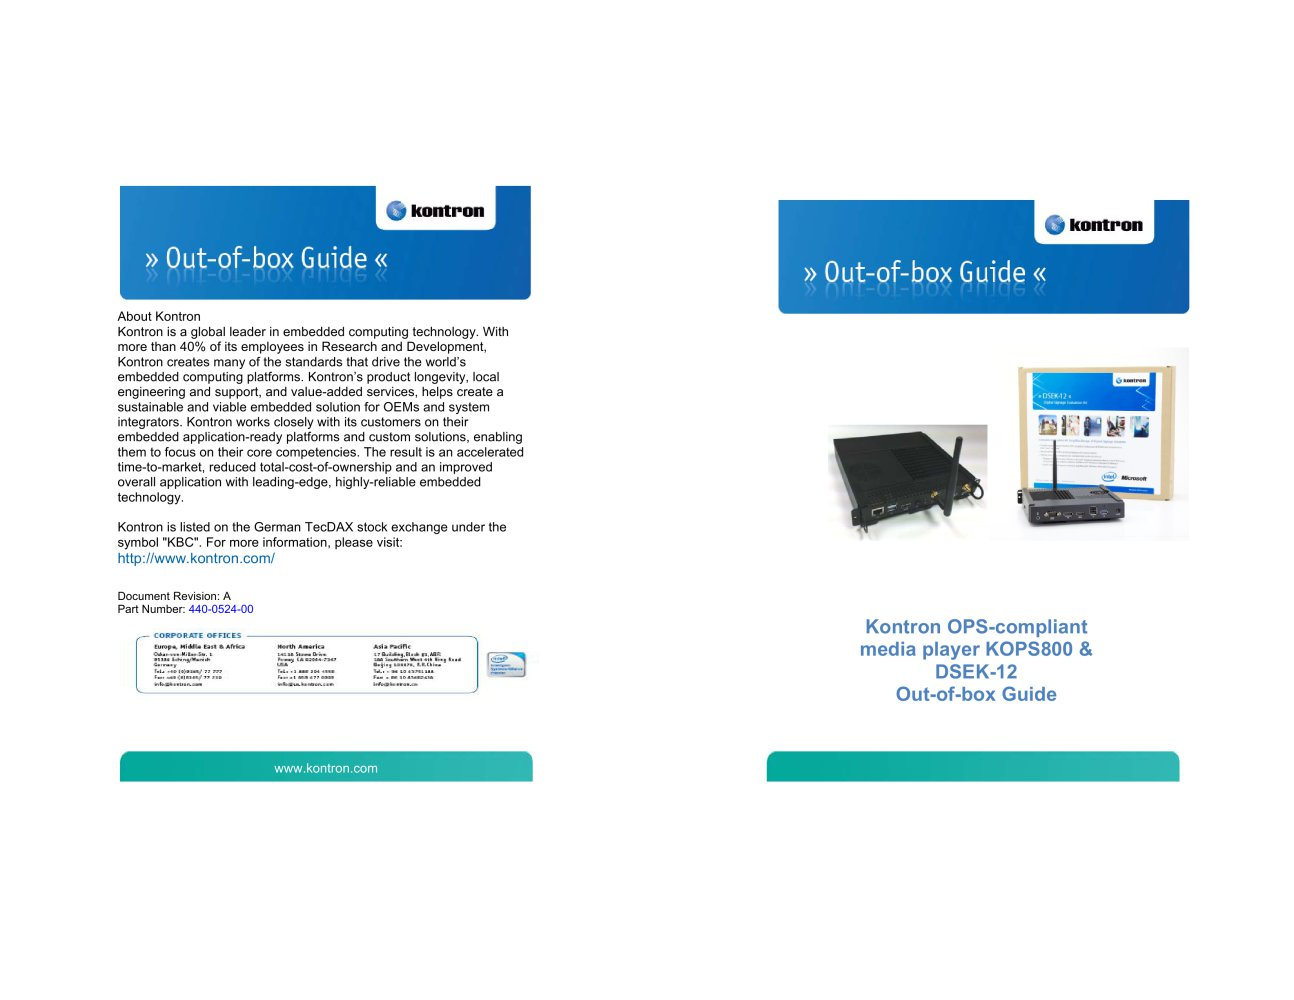 Kontron OPS-compliant media player KOPS800 & DSEK-12 Out-of-box Guide - 1 /  6 Pages